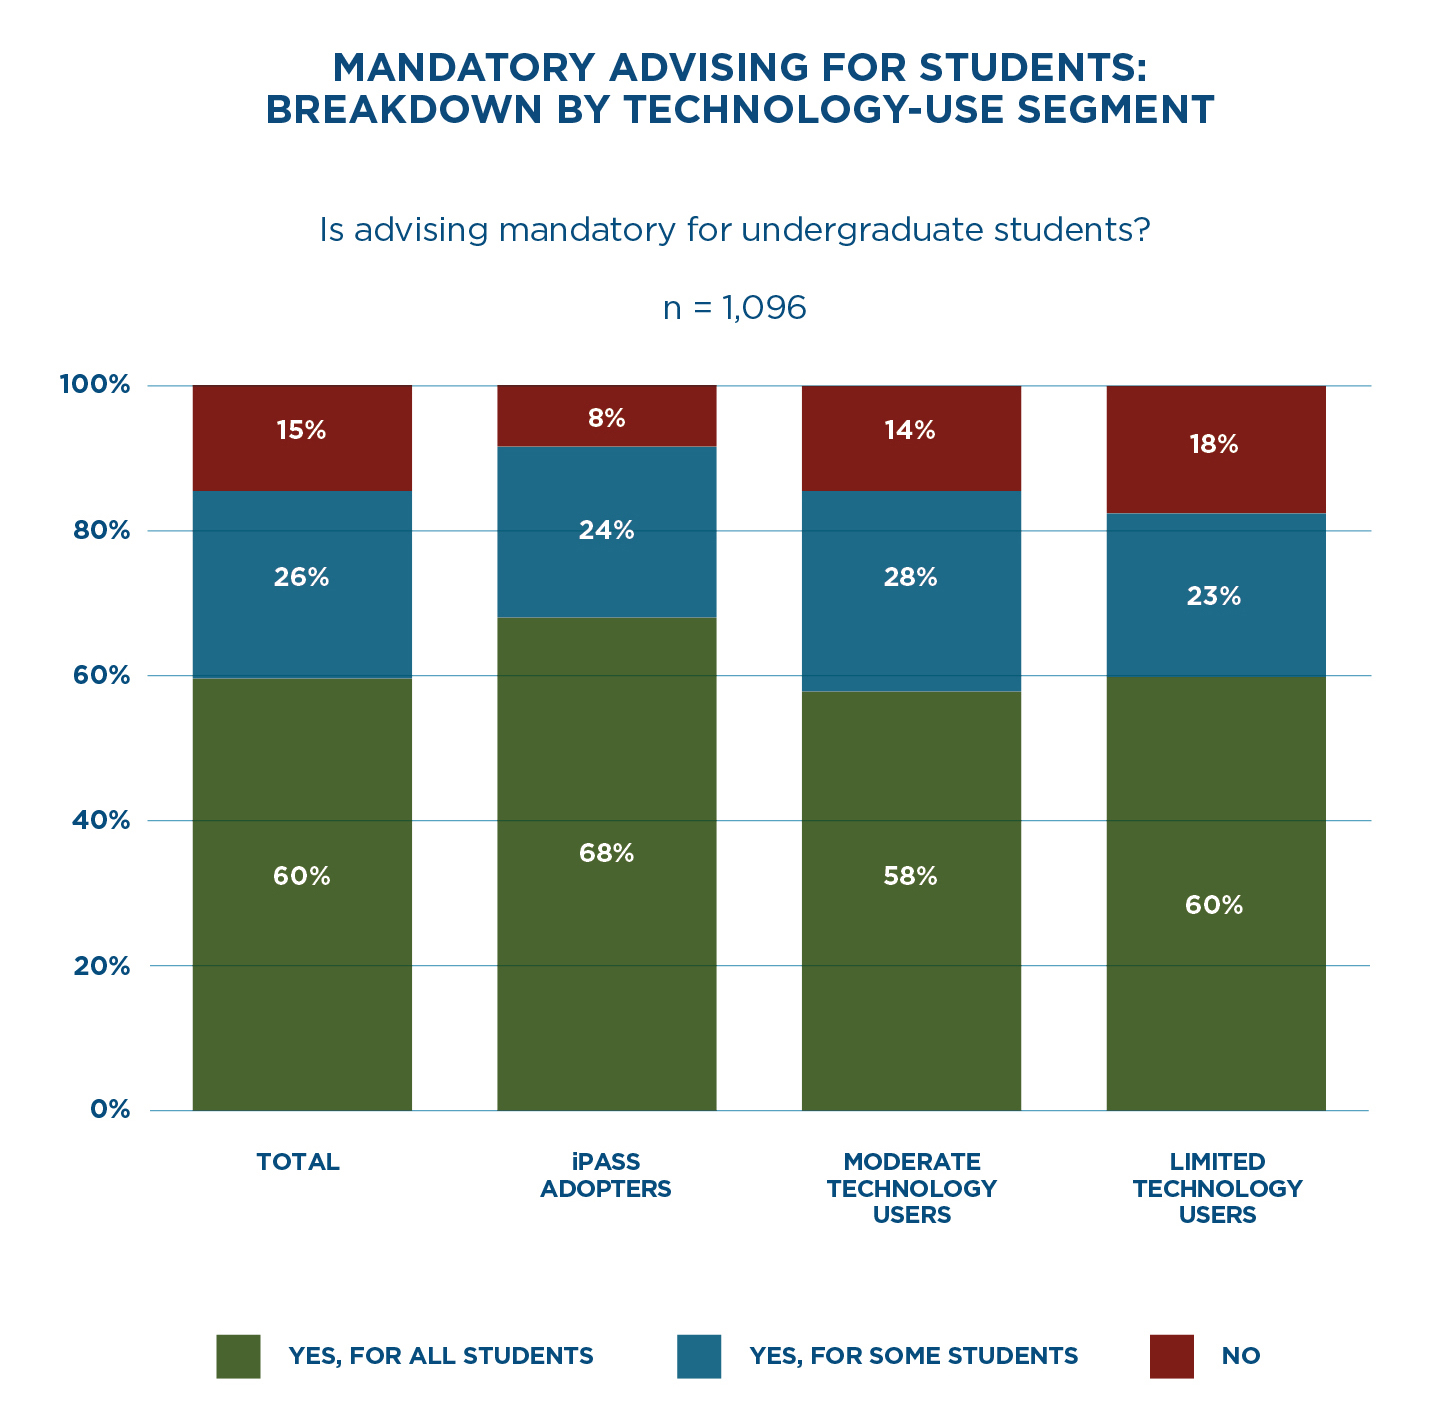 Mandatory Advising for Students: Breakdown by Technology-Use Segment